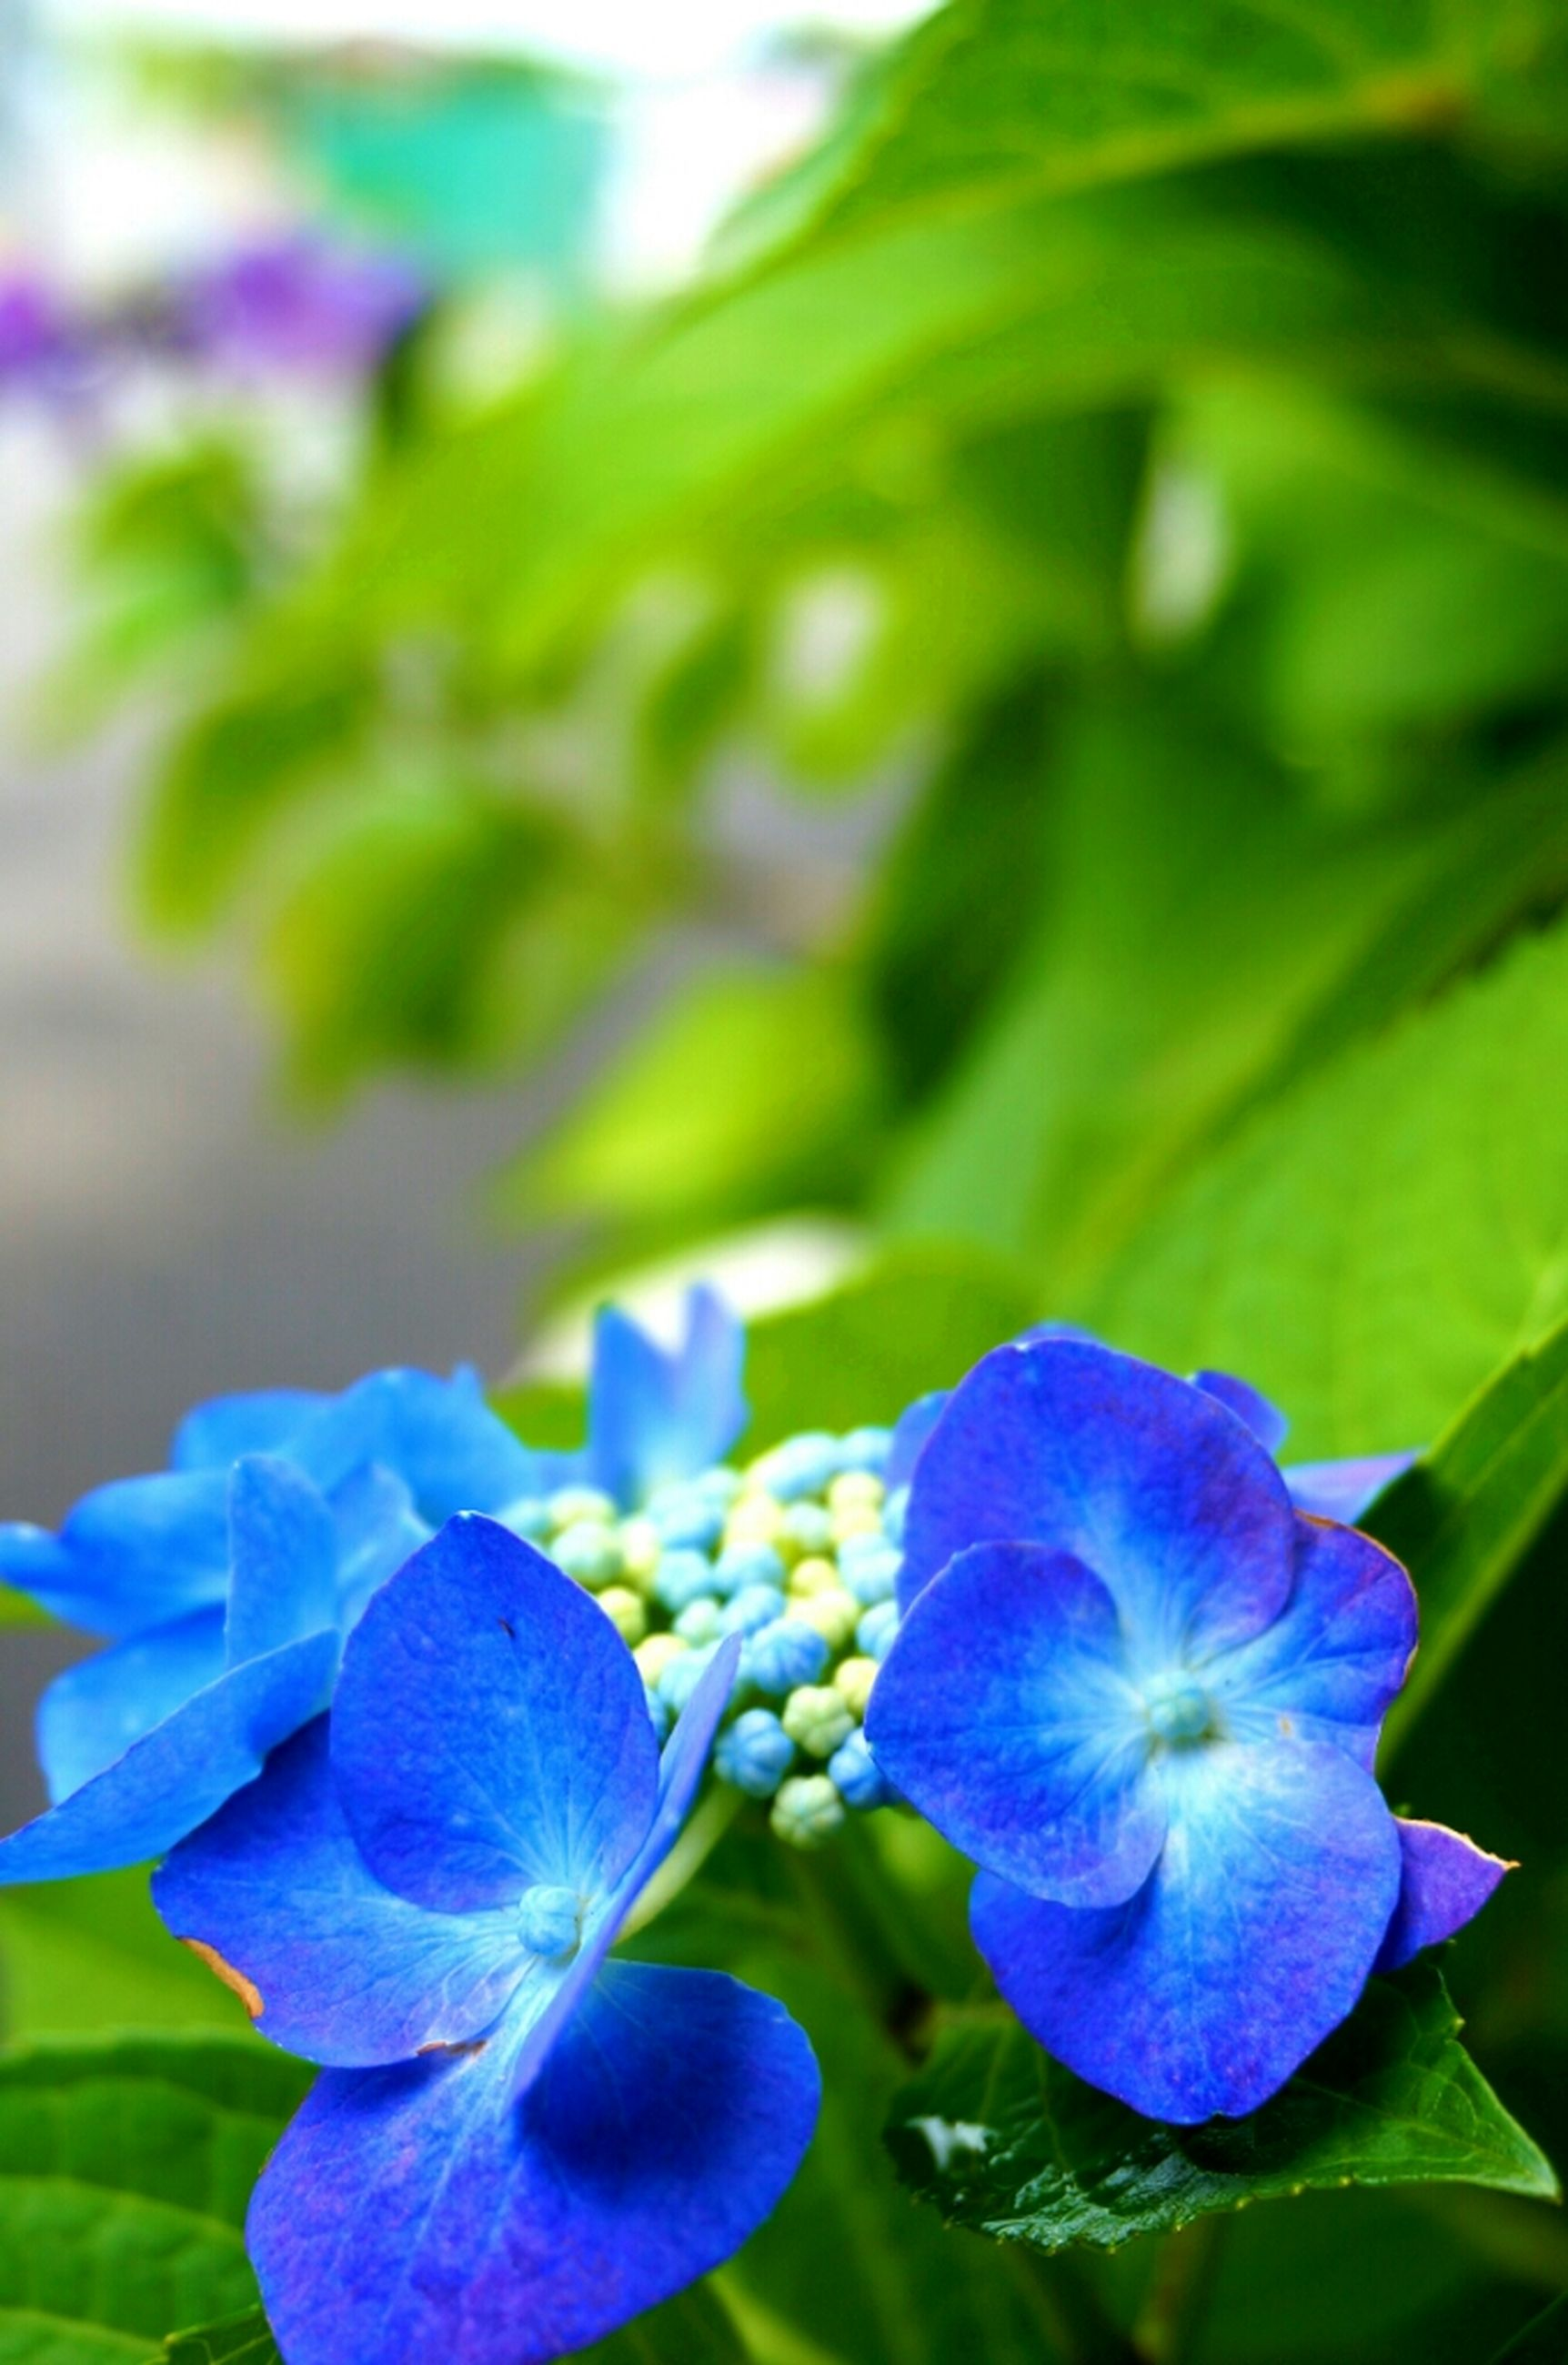 flower, purple, freshness, petal, fragility, growth, flower head, beauty in nature, close-up, plant, blooming, blue, nature, focus on foreground, in bloom, leaf, park - man made space, hydrangea, green color, outdoors